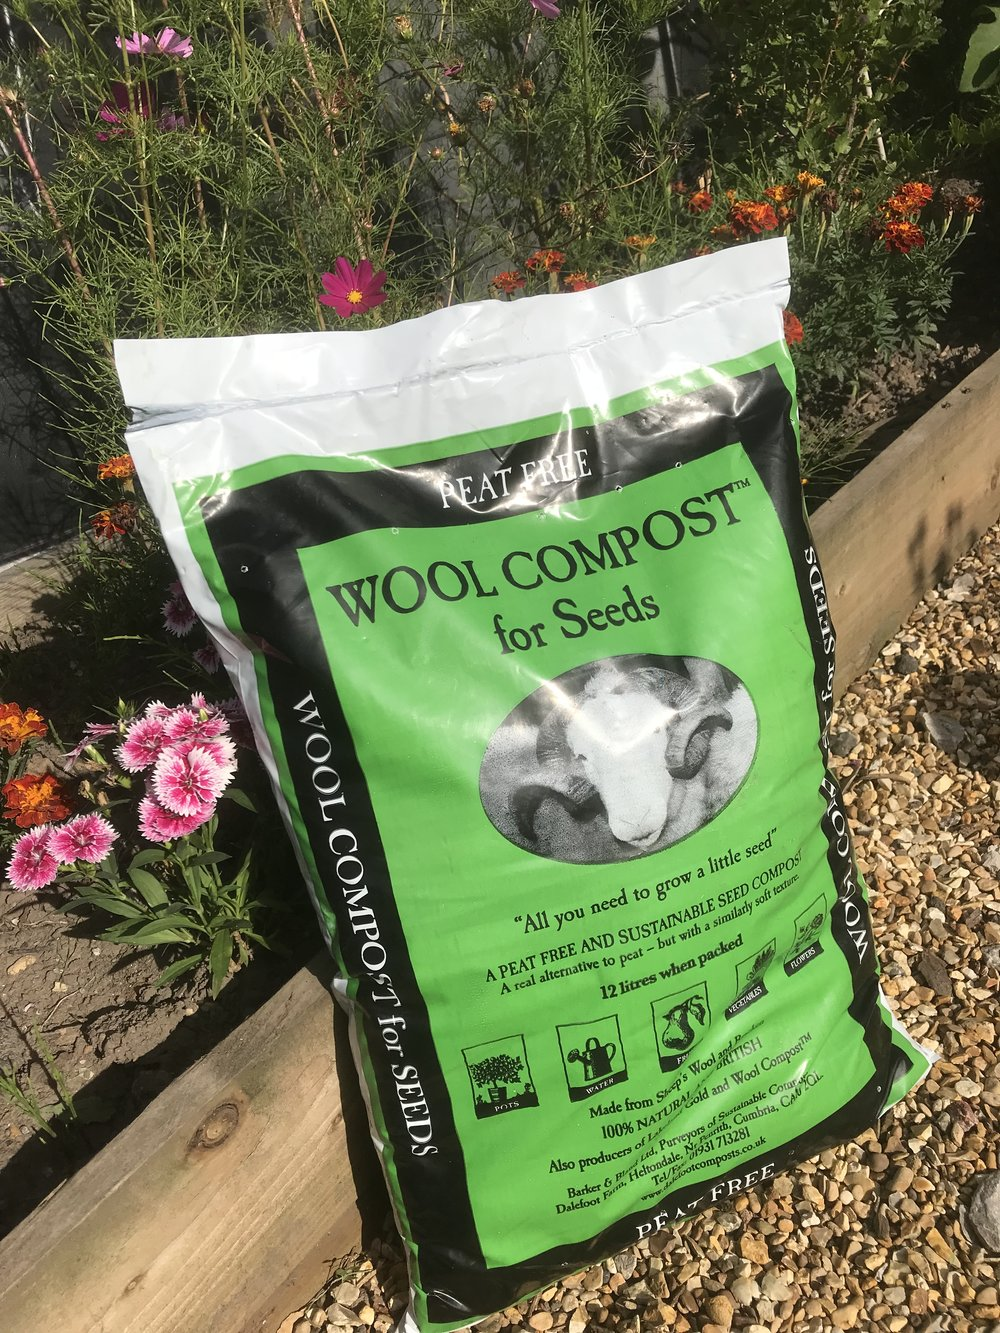 Wool Compost for Seeds - £5.95 - A blended, fine mix to provide the perfect start for your seeds. Healthy green seedlings from a gentle feed. Once roots develop, transfer to Wool Compost.